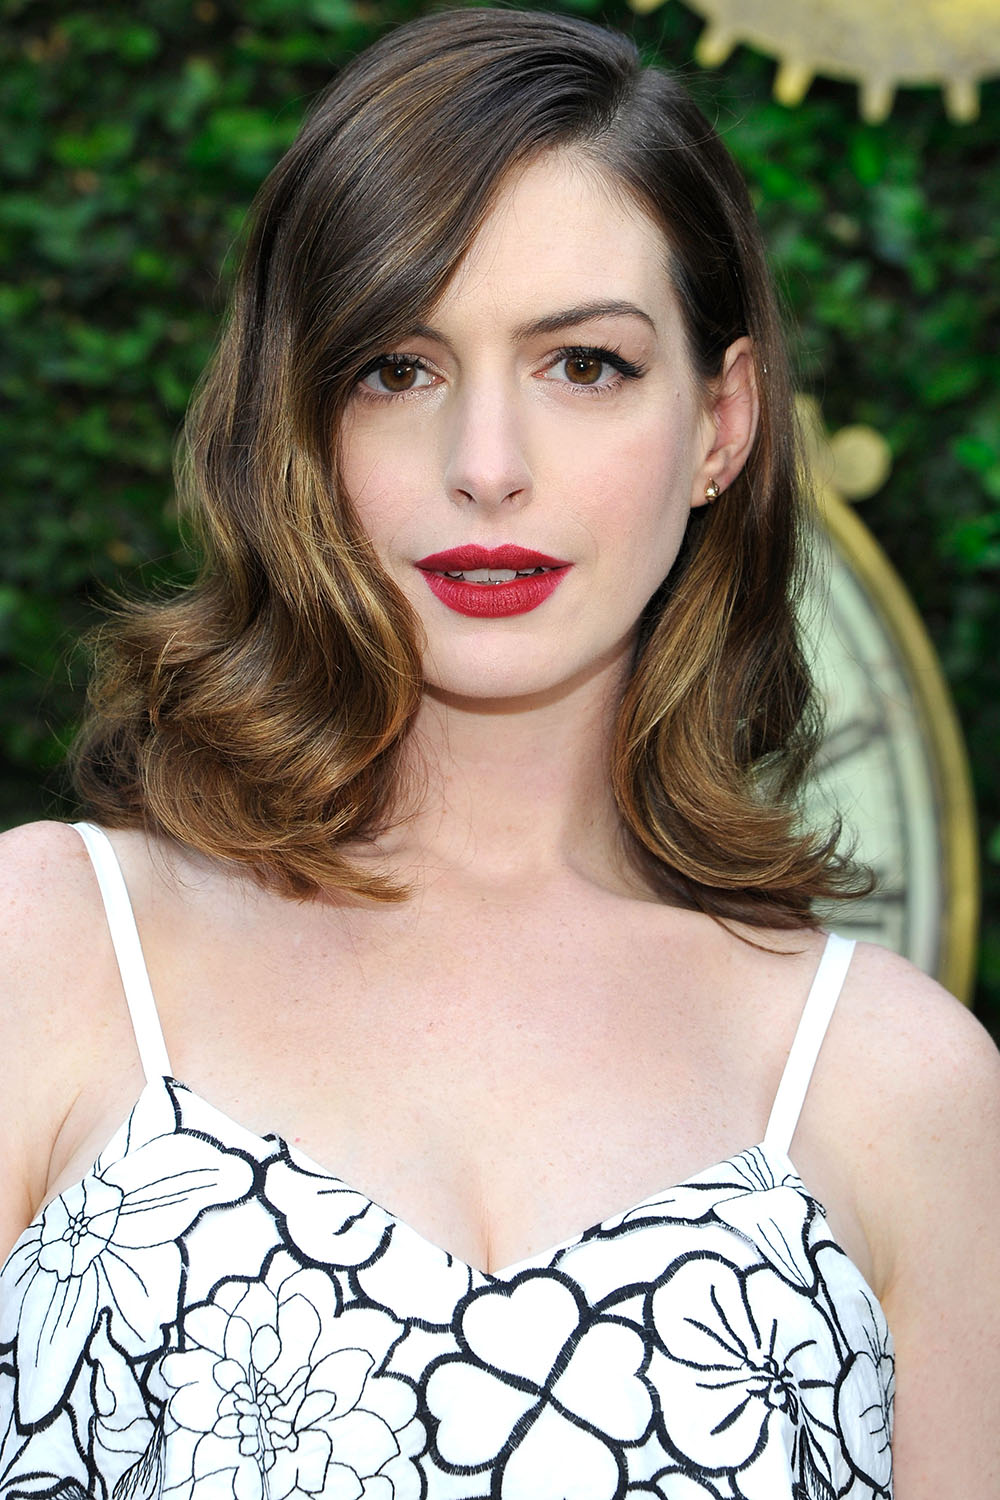 Remarkable 33 Best Medium Hairstyles Celebrities With Shoulder Length Haircuts Short Hairstyles Gunalazisus